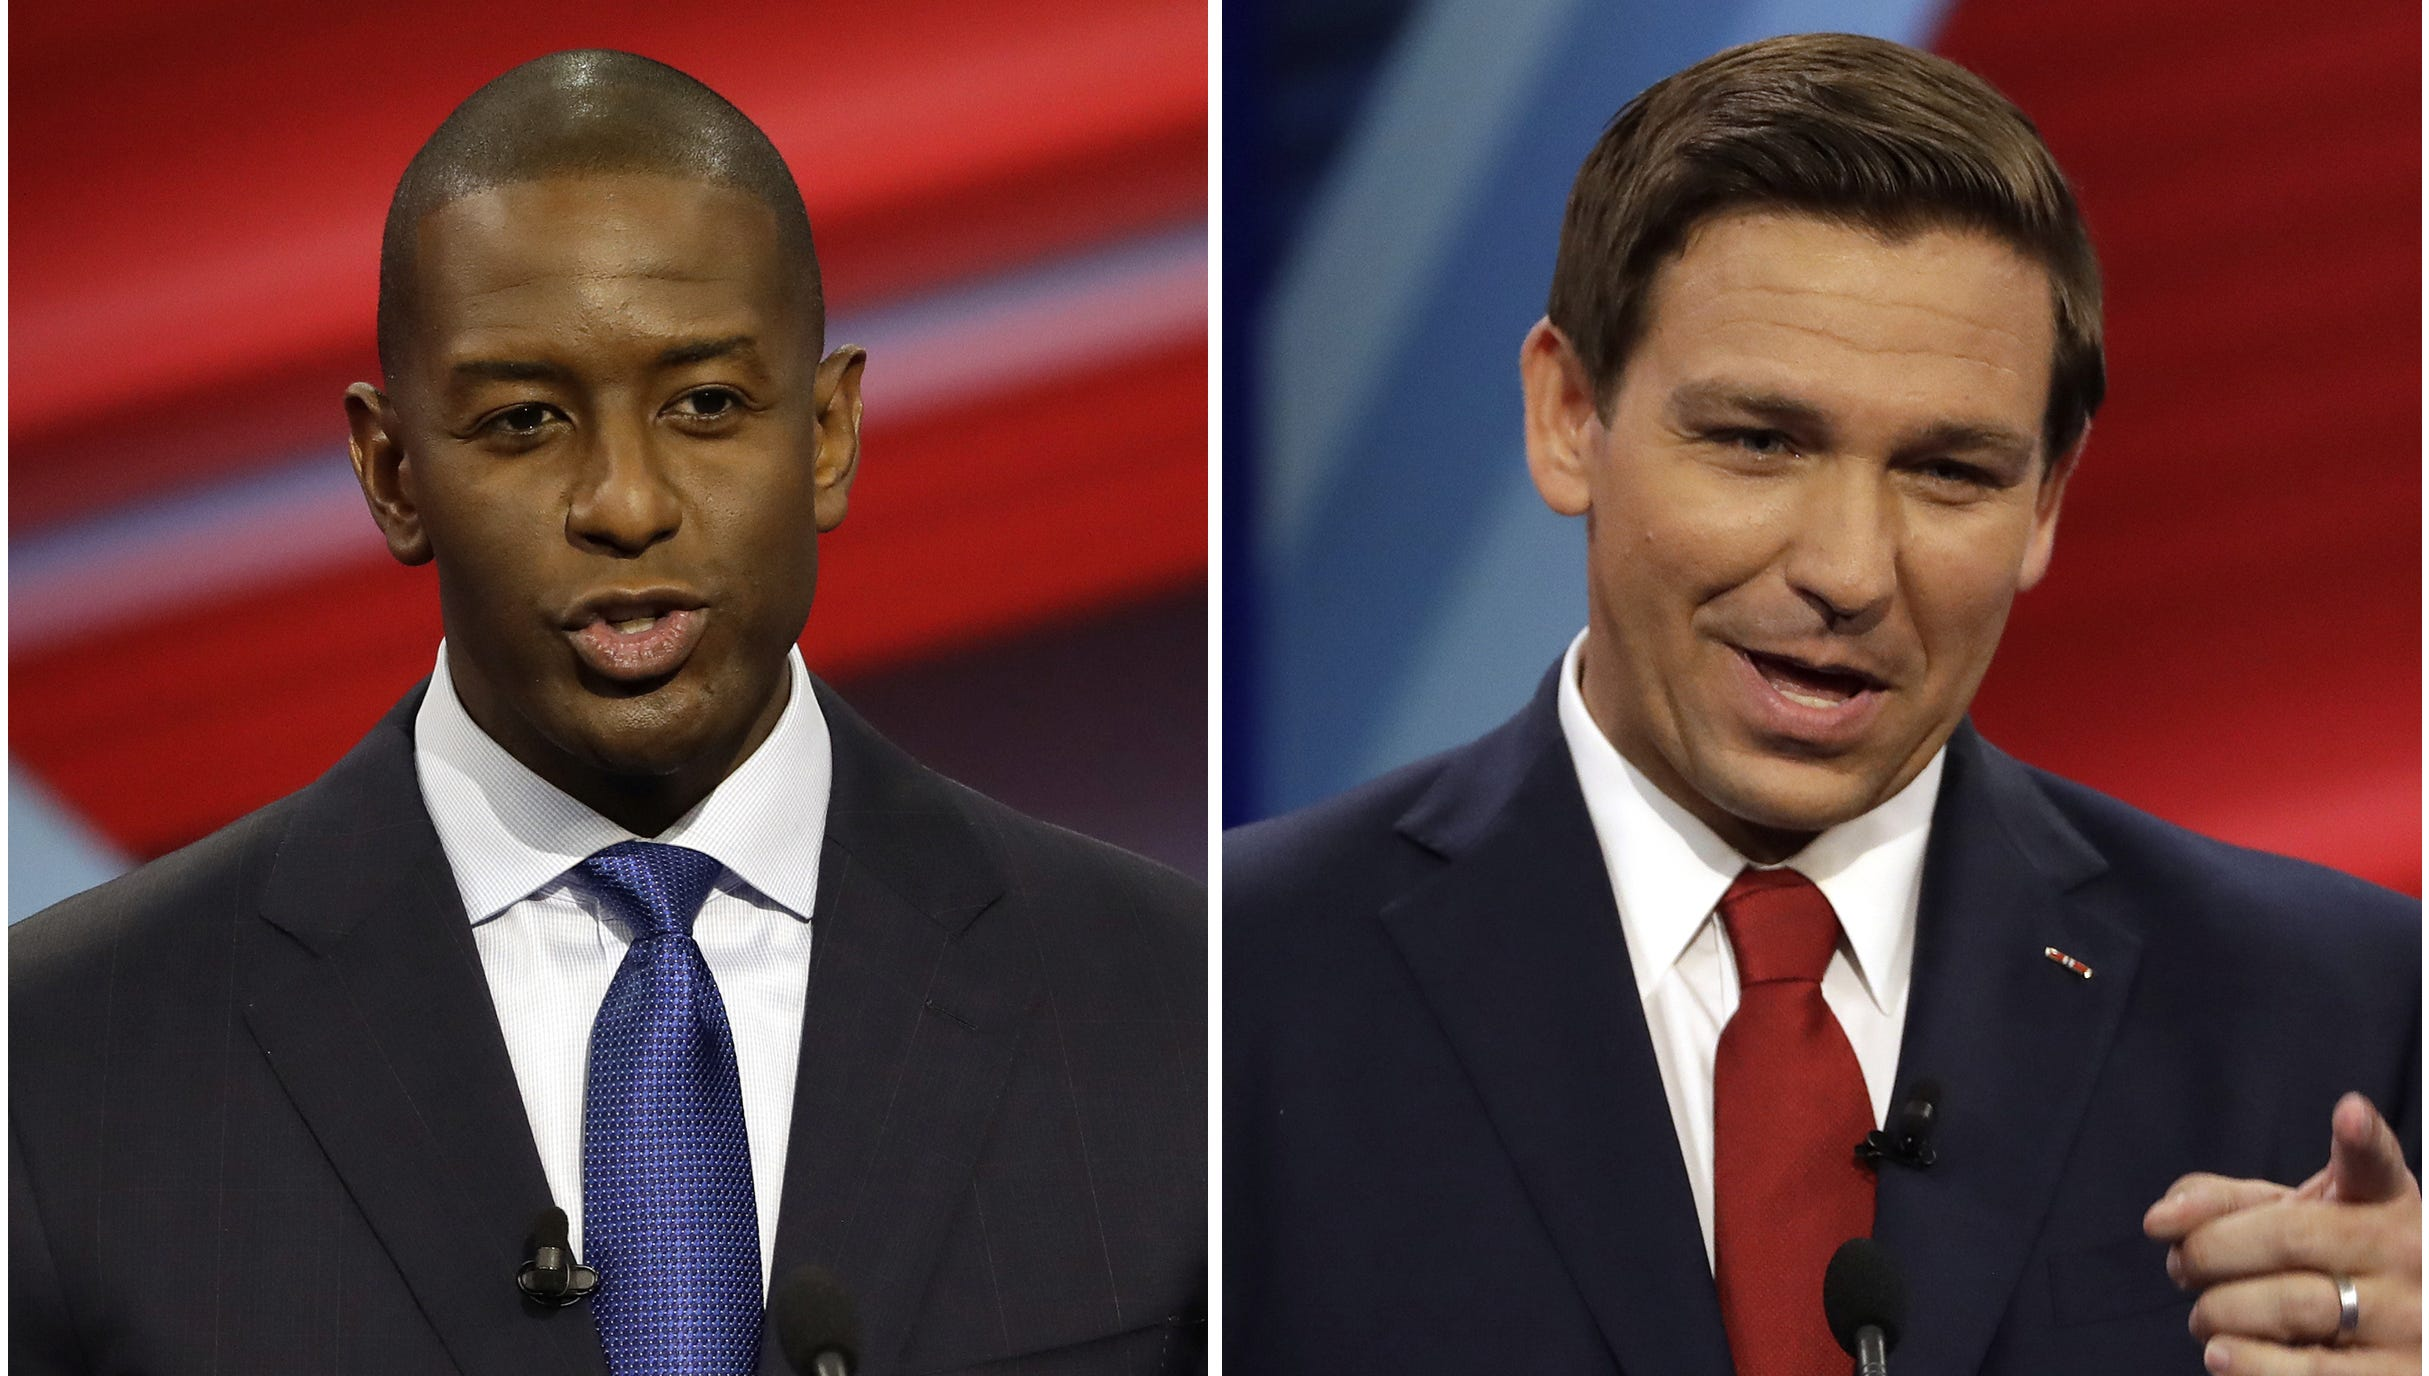 Polls have consistently shown a tight race in Florida between DeSantis, a loyalist to President Donald Trump, and Tallahassee Mayor Gillum.